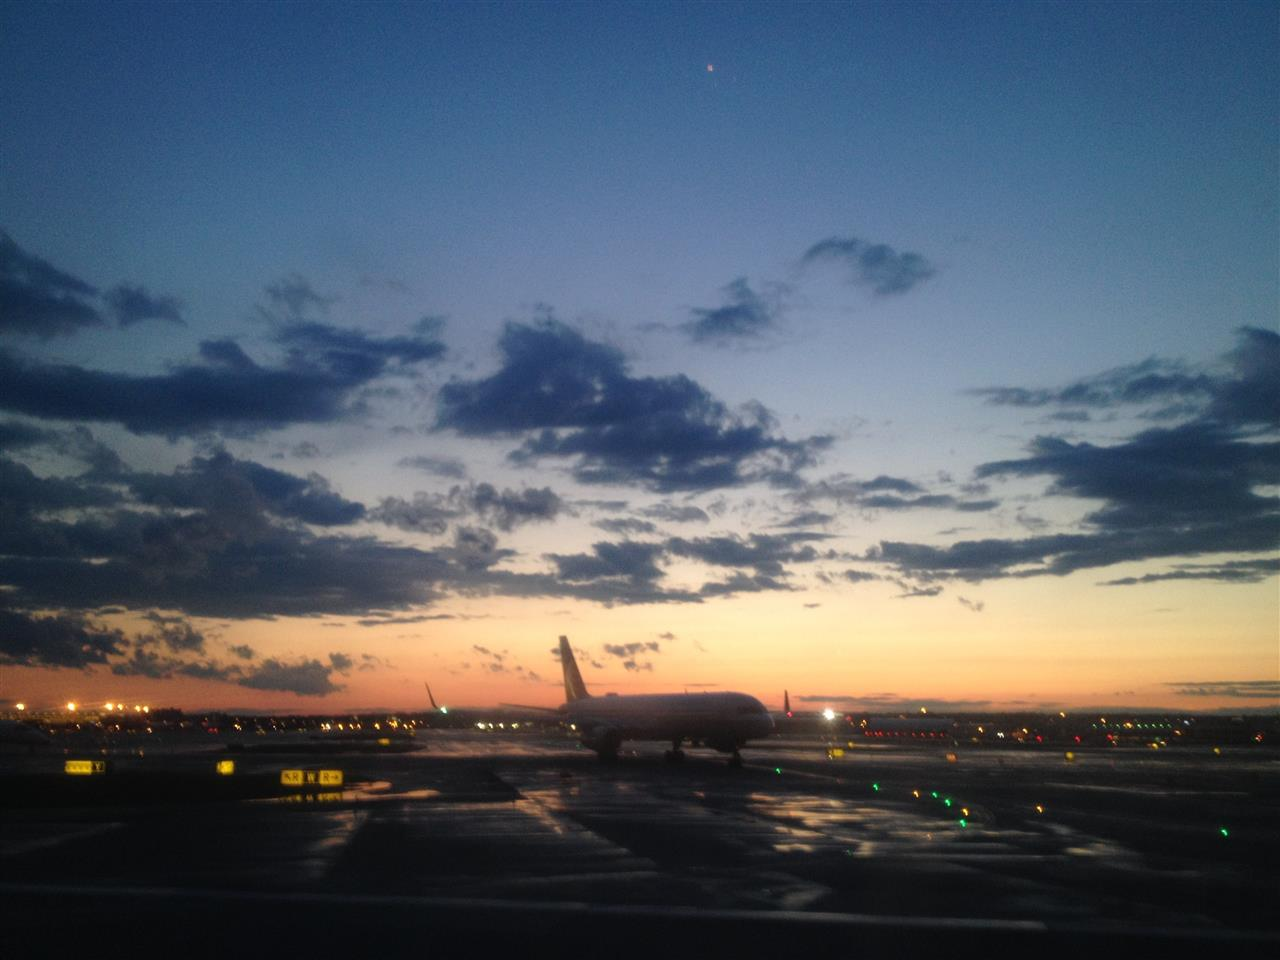 Washington Dulles International Airport, Sunset Watch, Runway